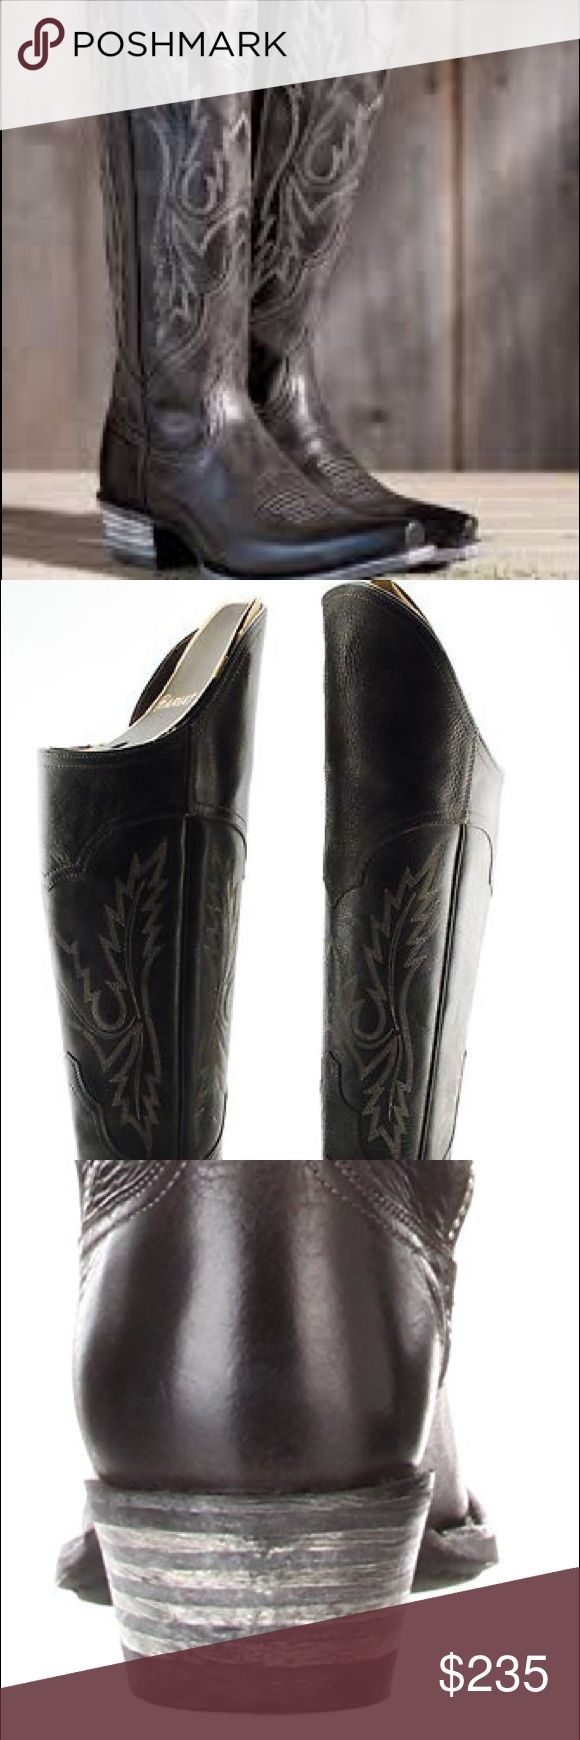 Ariat new in box size 10 black over the knee boots Ariat new in box over the knee cowboy boots. The Musketeer-inspired Murrieta is a lifestyle-defining boot with feminine features to match its rugged composition. This is the boot for the woman whose personal style is without boundaries. The slim, full-grain leather shaft is offset by roughed-out seams and stitch detailing and topped with a high-arched topline that folds down. With overall authentic western styling and ATS footbed technology…